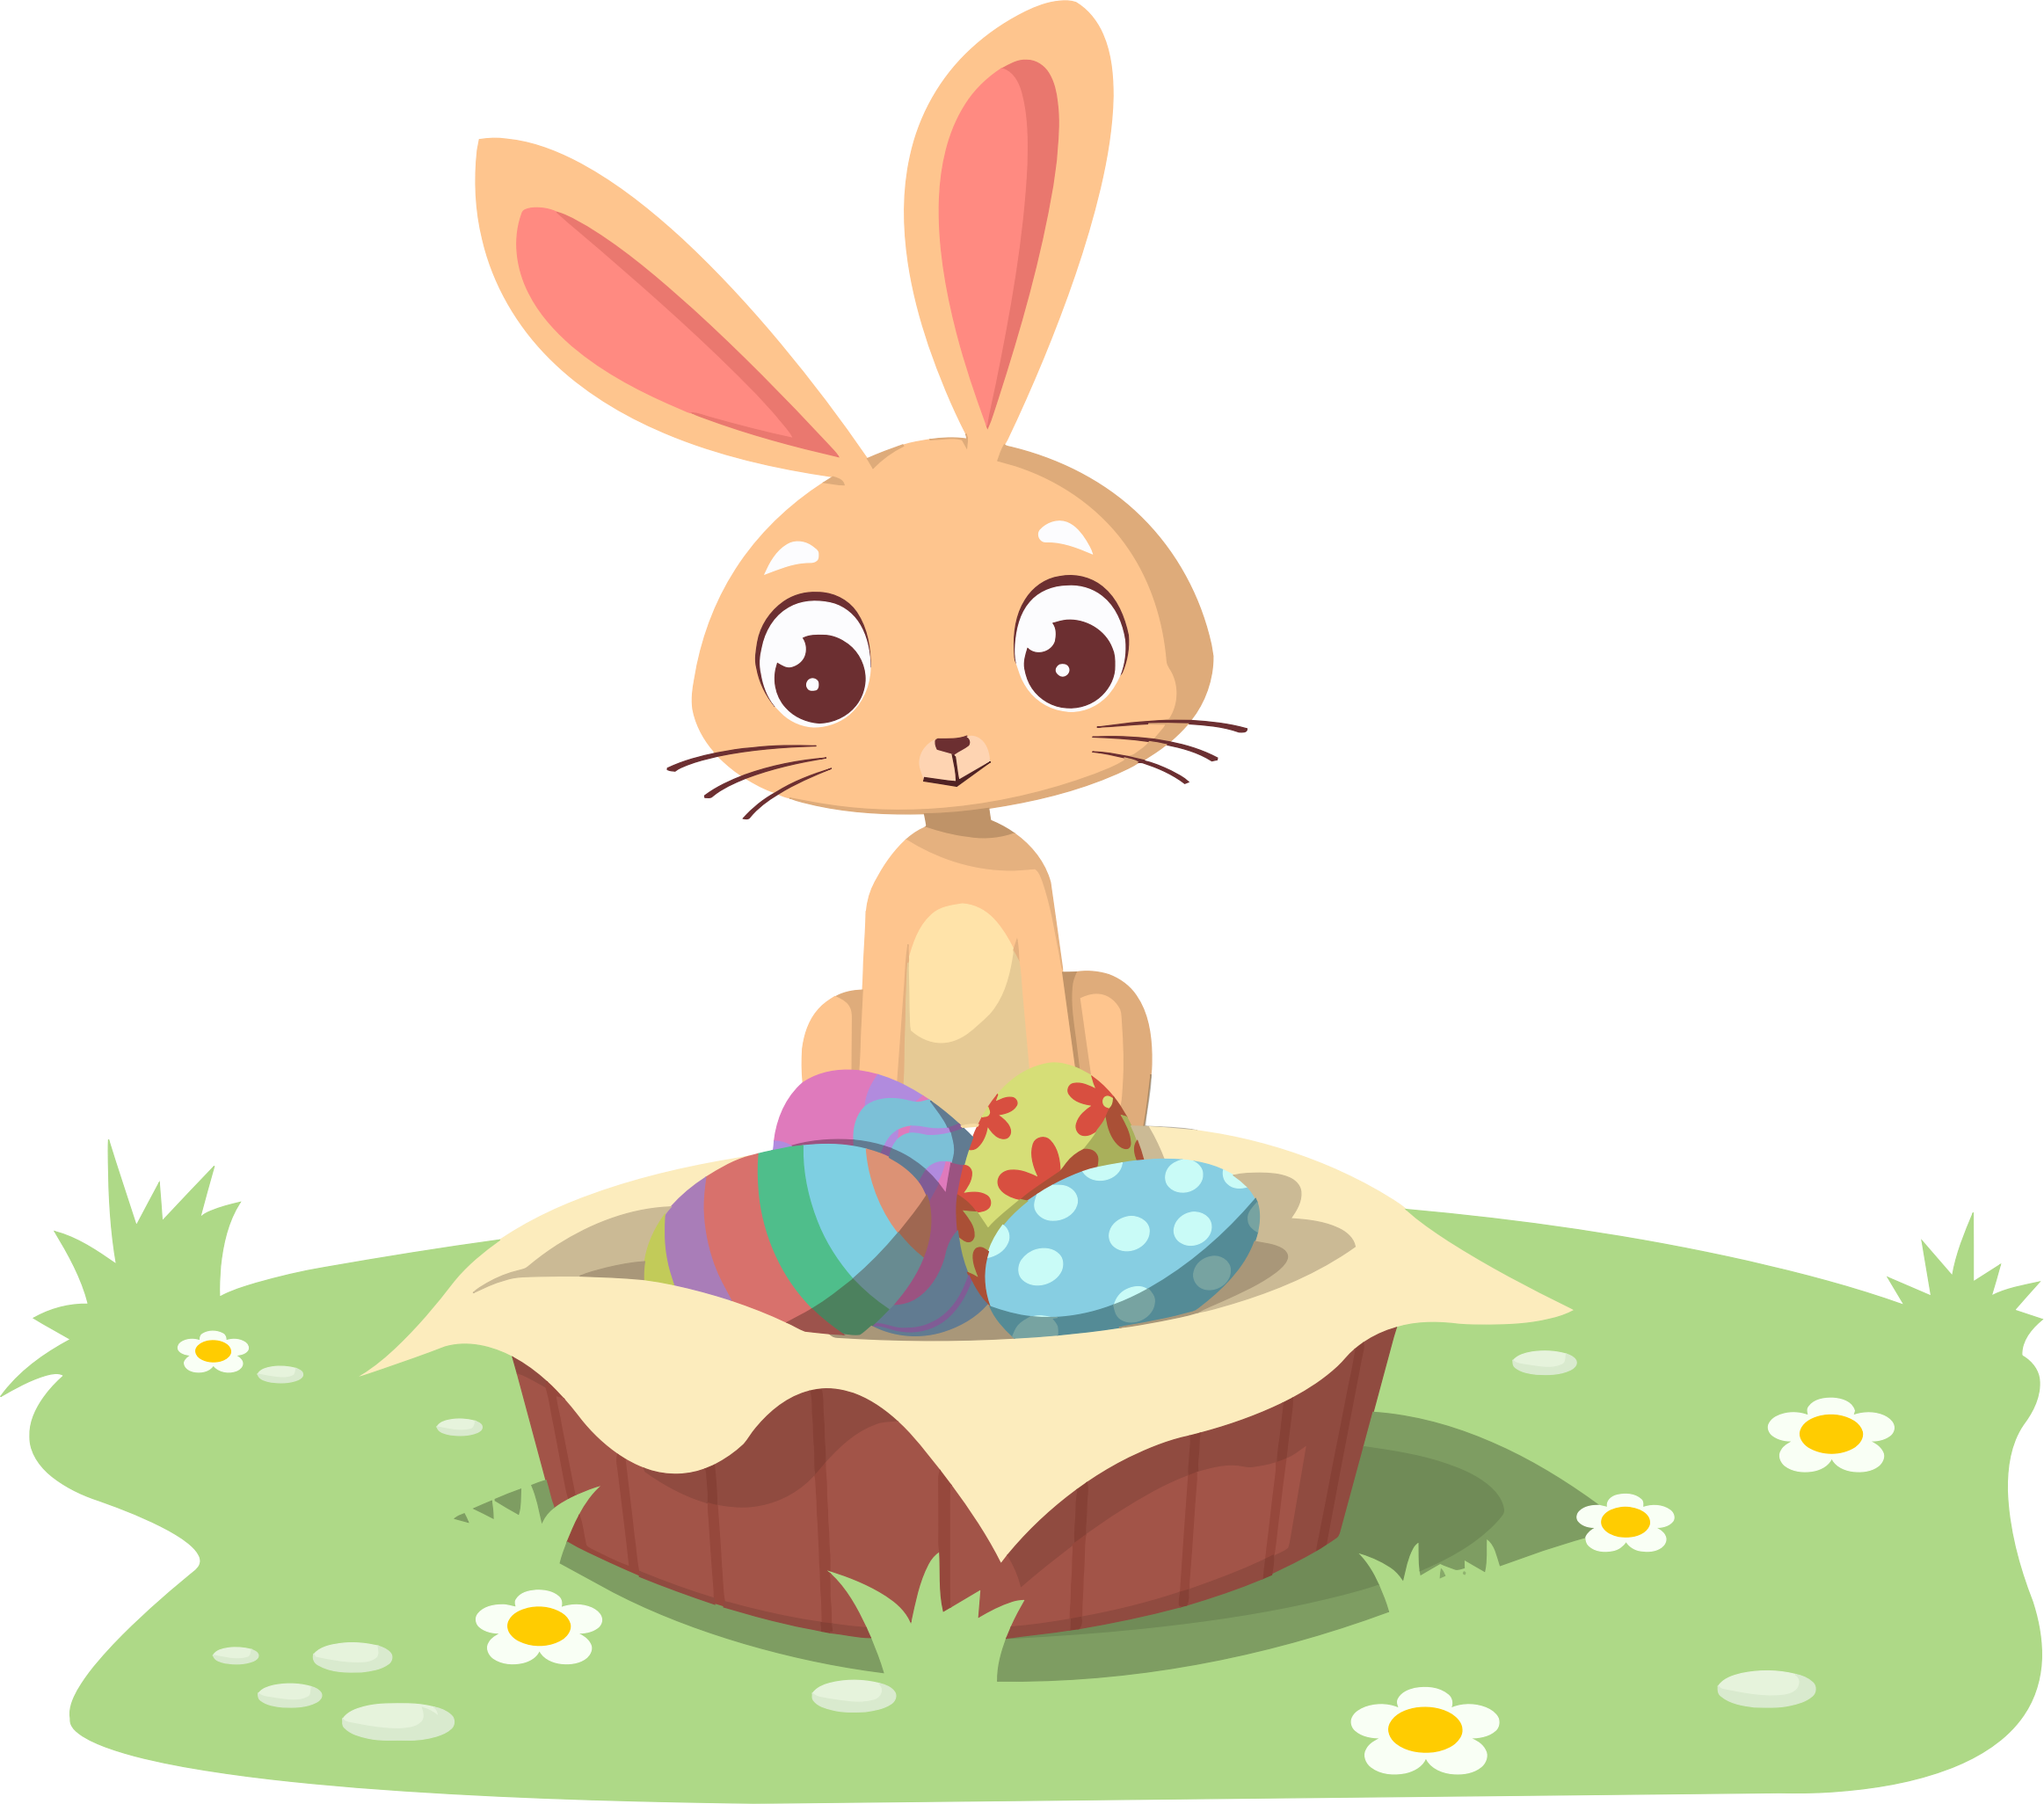 Illustration big image png. Cool clipart easter bunny